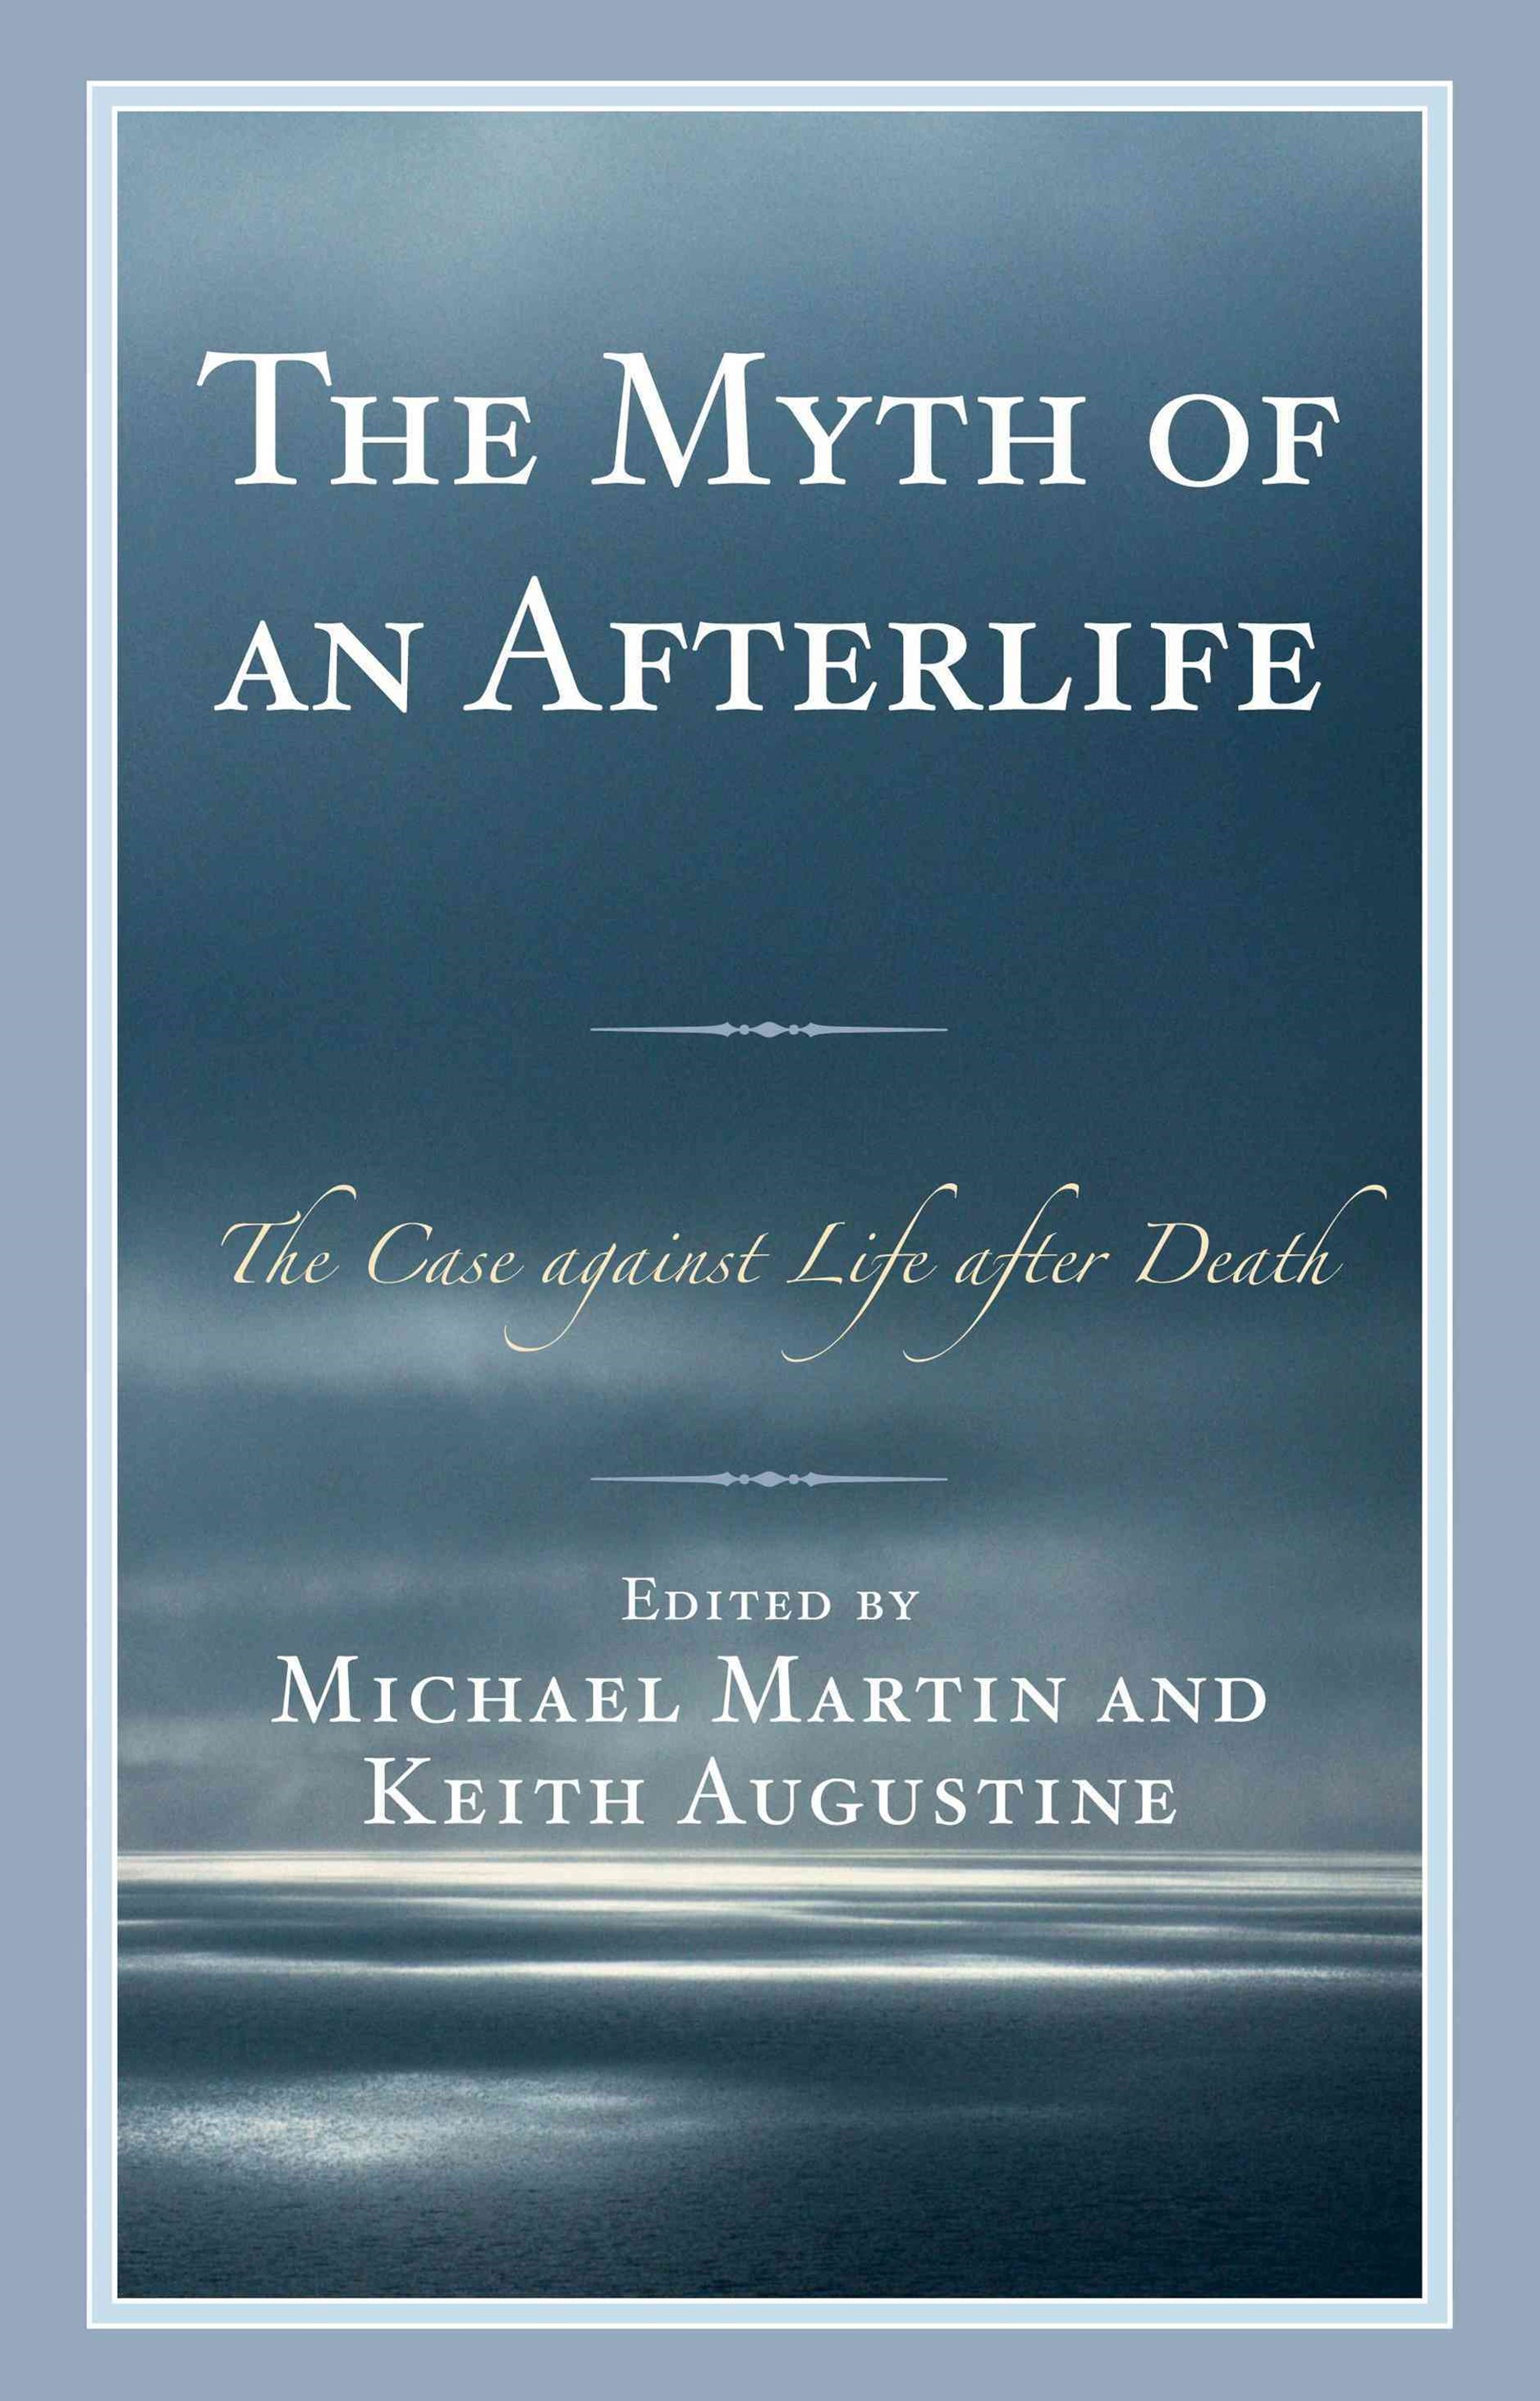 Myth of an Afterlife